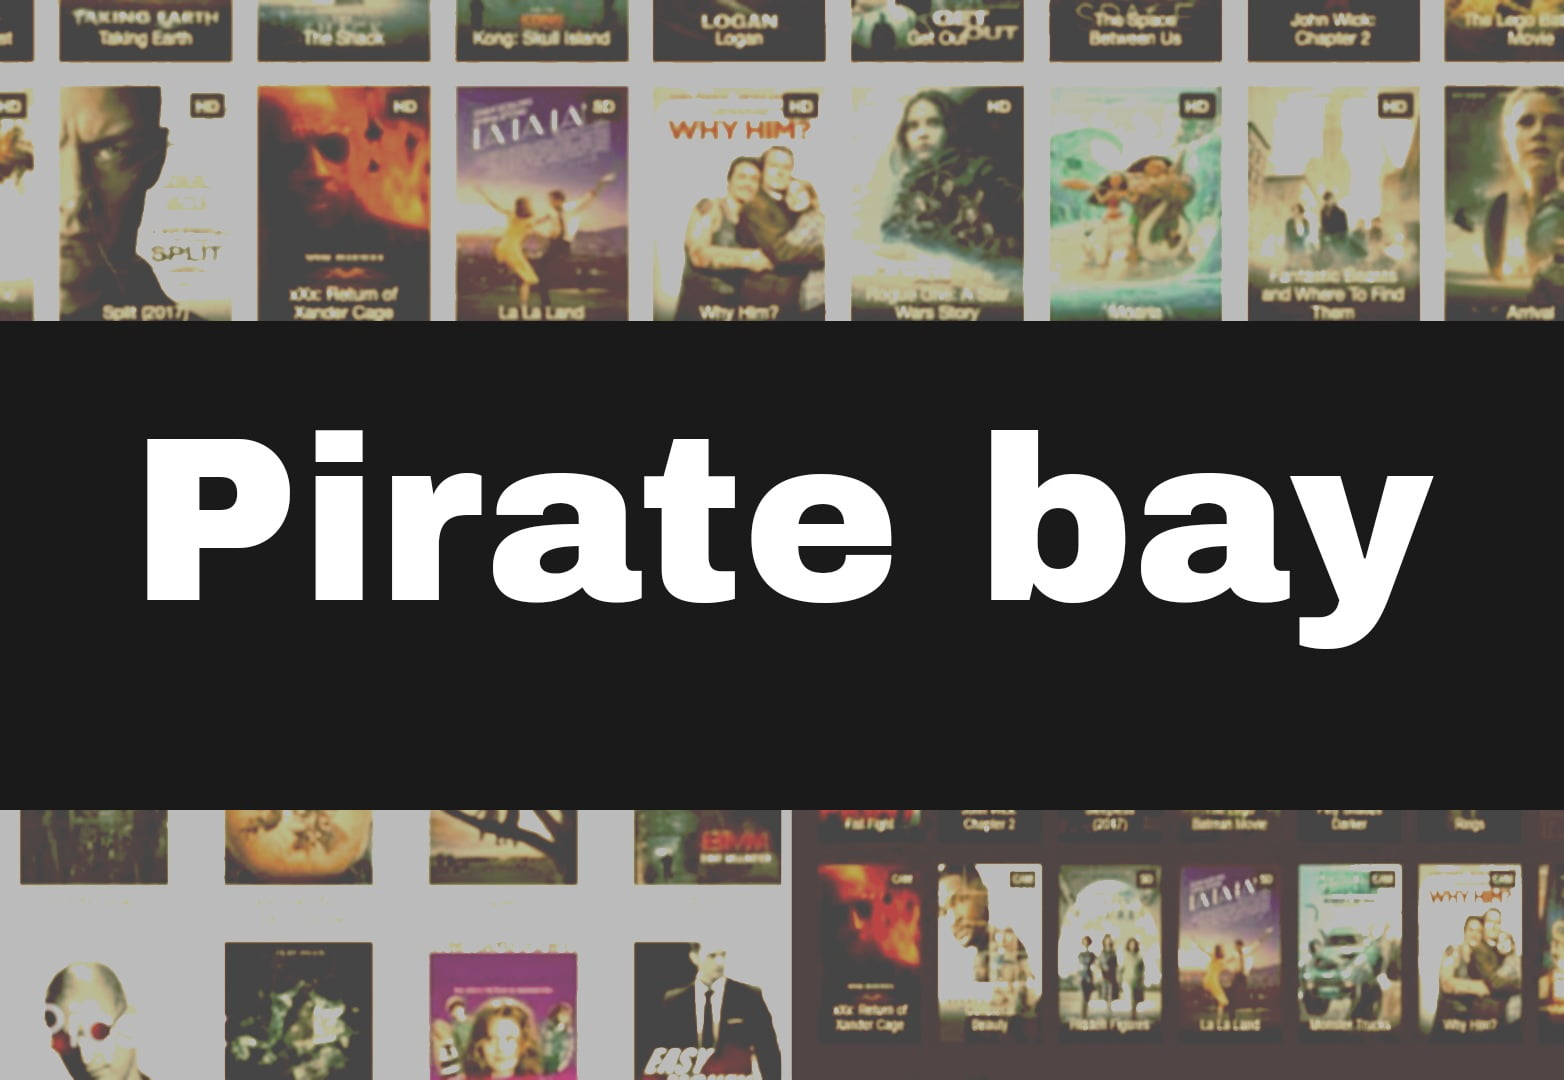 Pirate Proxy 2021 – Pirate bay proxy list Working USA Torrent Search